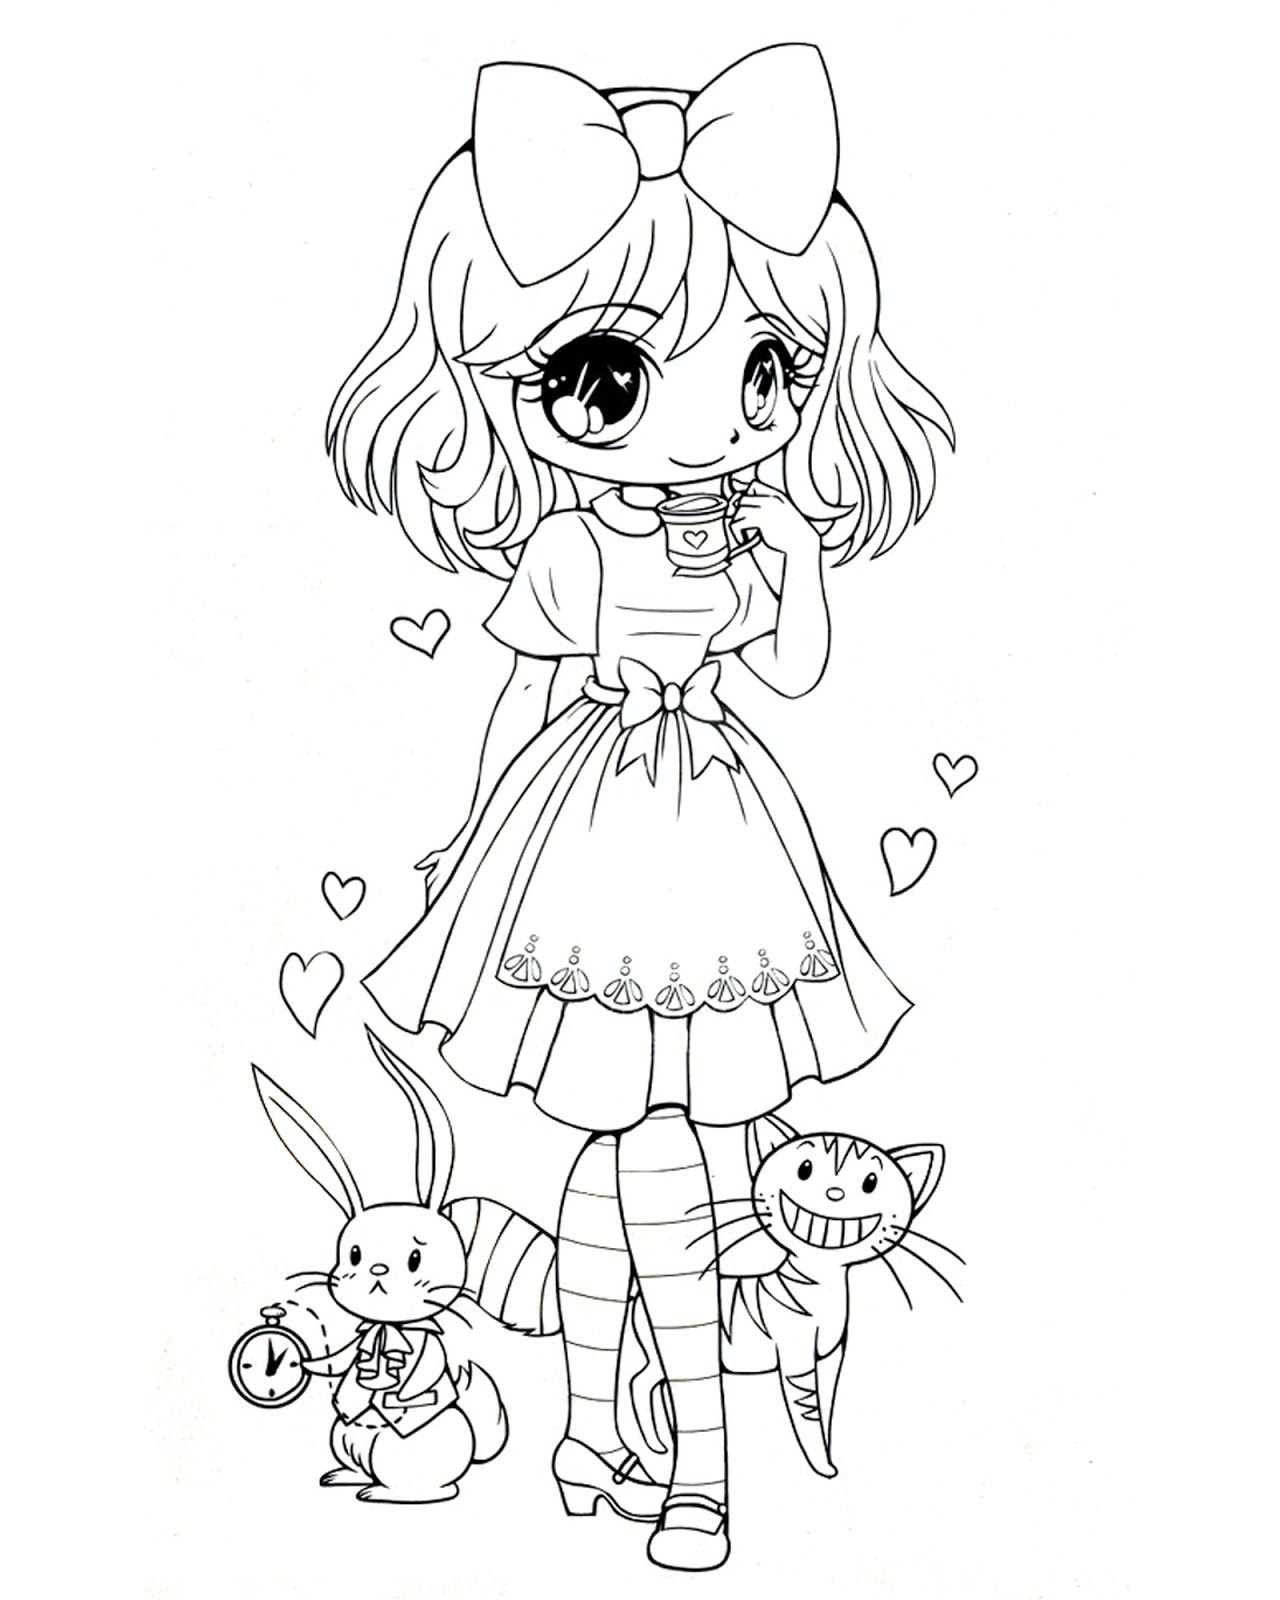 Alice In Wonderland | Coloriage Manga, Dessin Coloriage concernant Coloriage Manga Kawaii